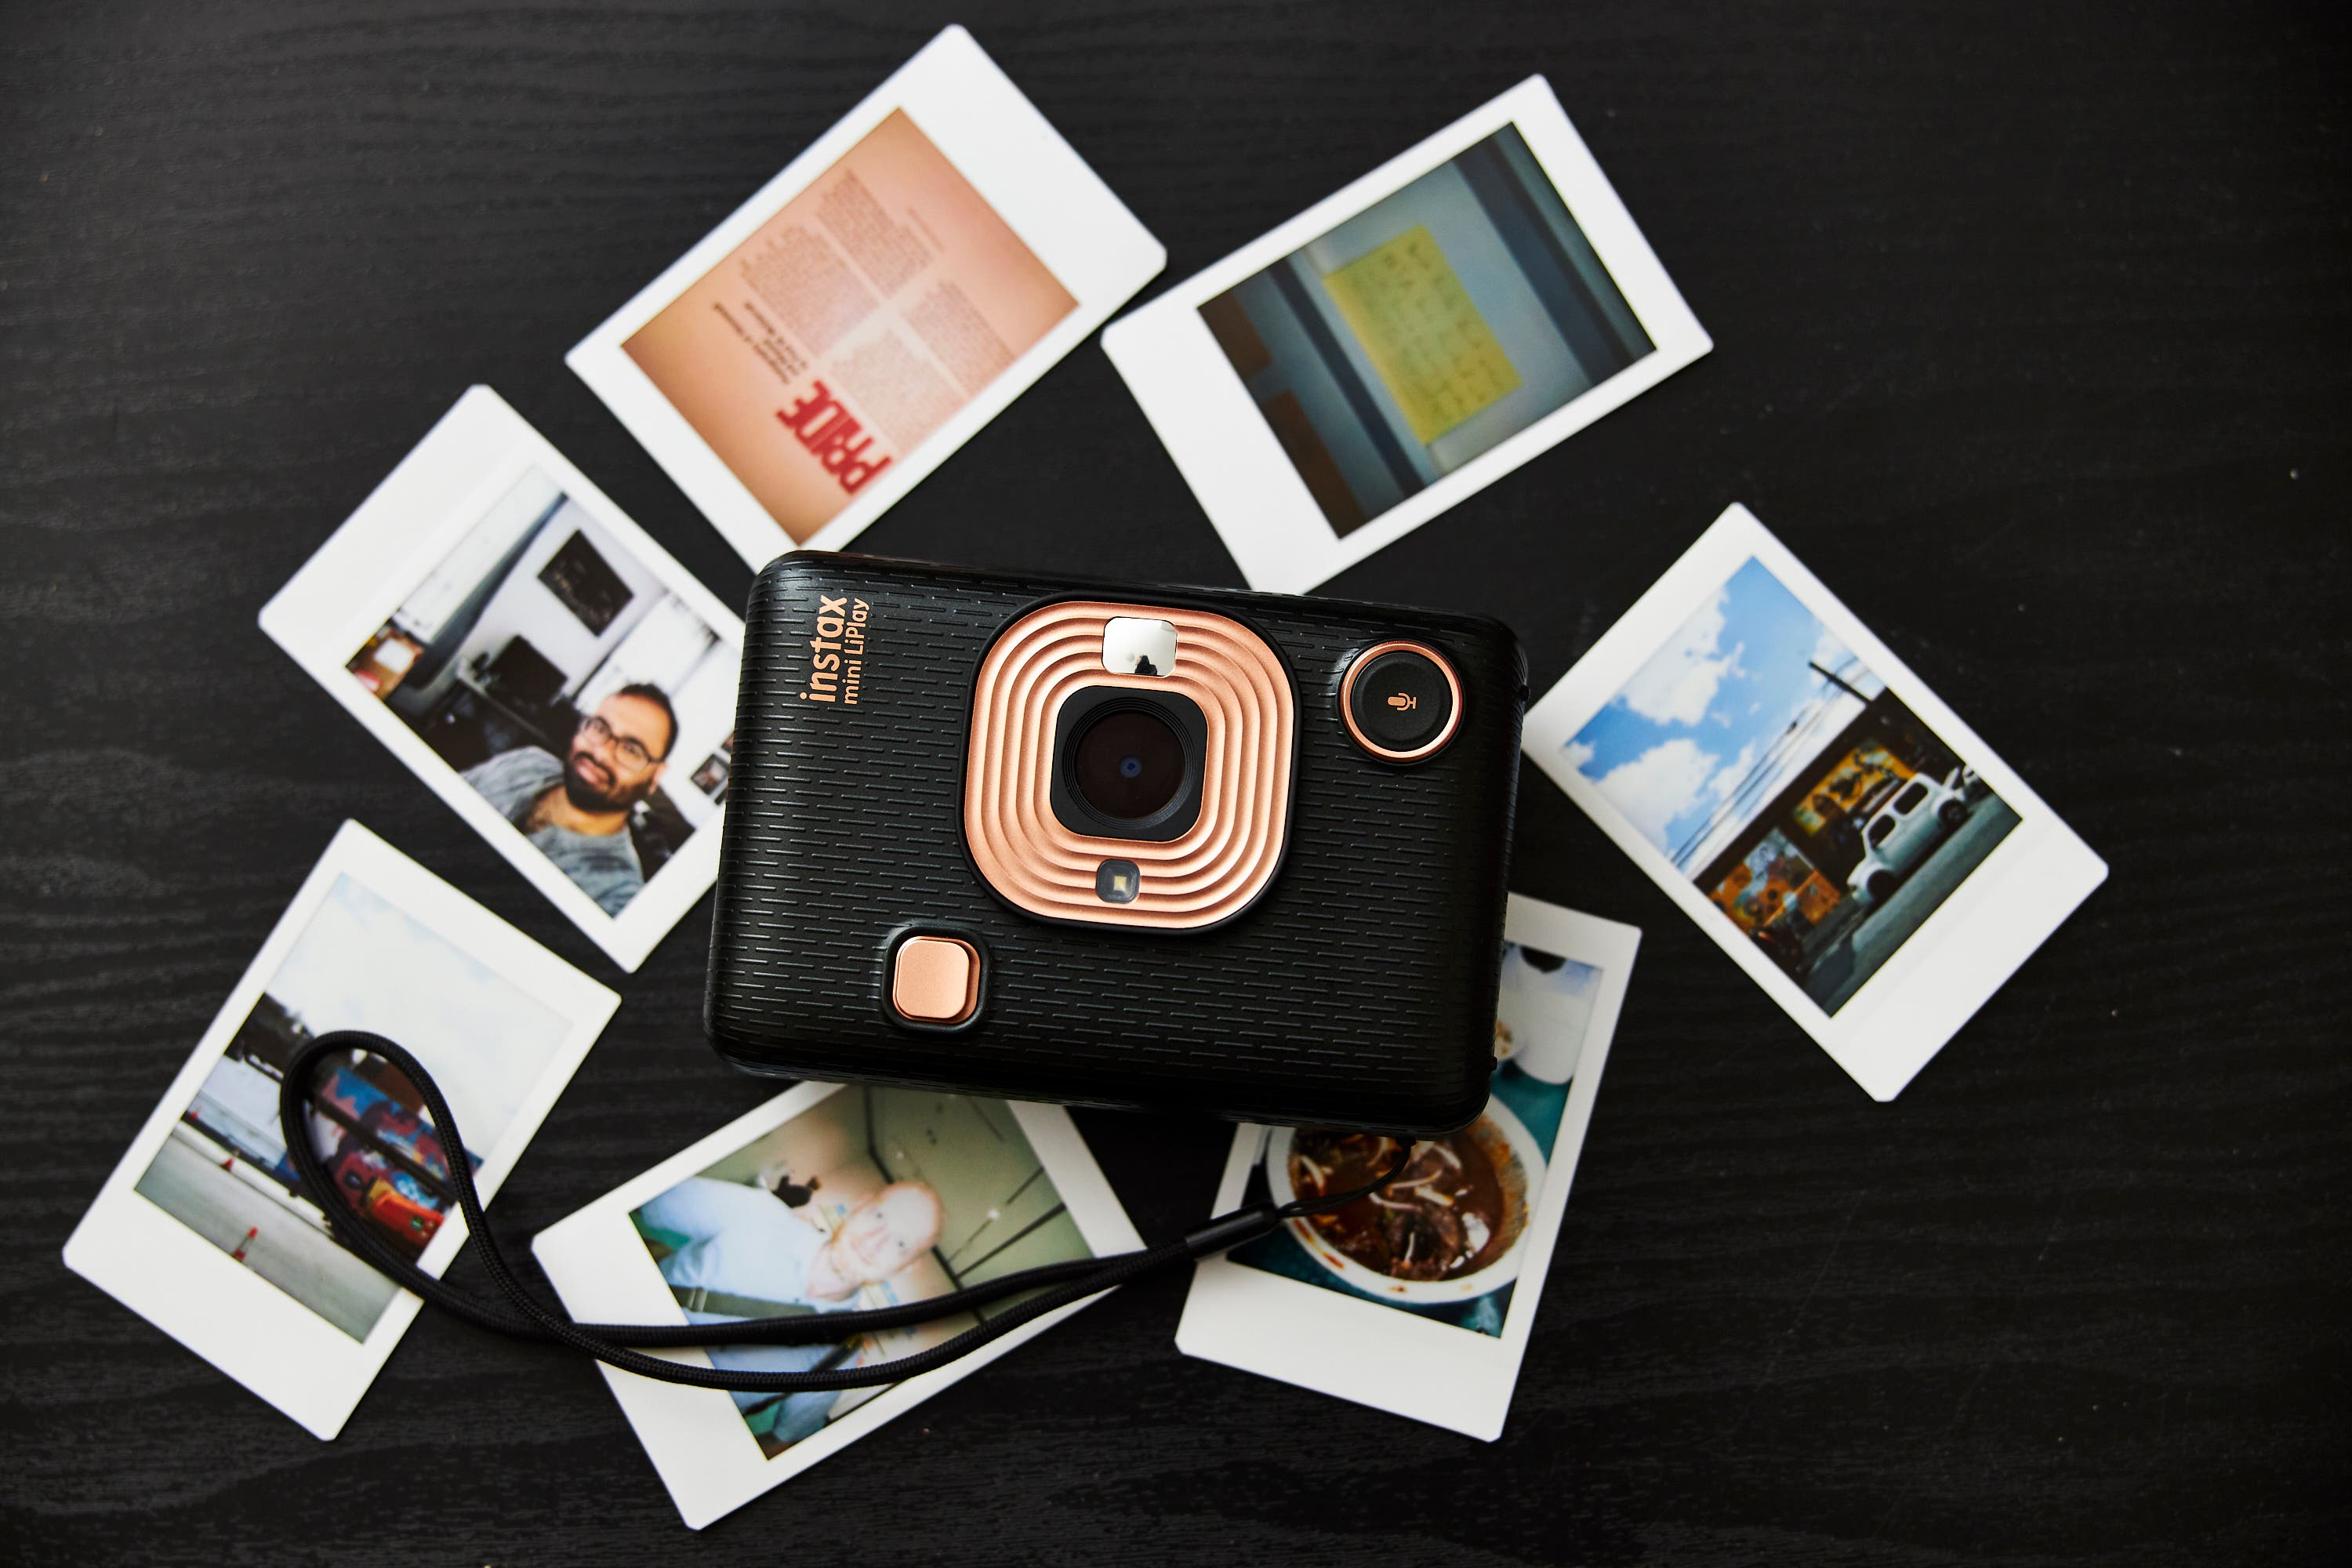 Review: Fujifilm Instax Mini LiPlay (My New Favorite